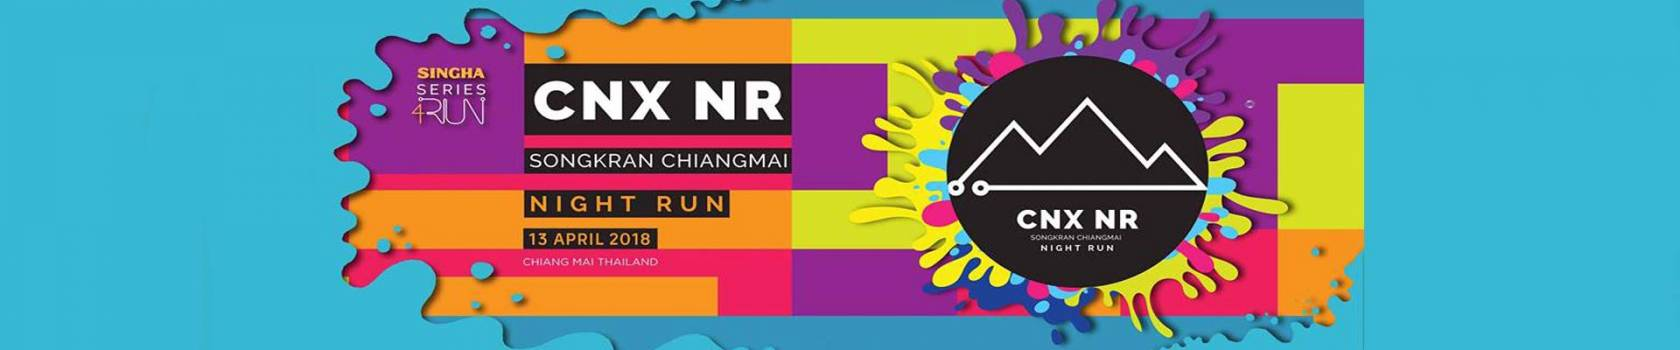 Singha Songkran Chiang Mai Night Run 2018